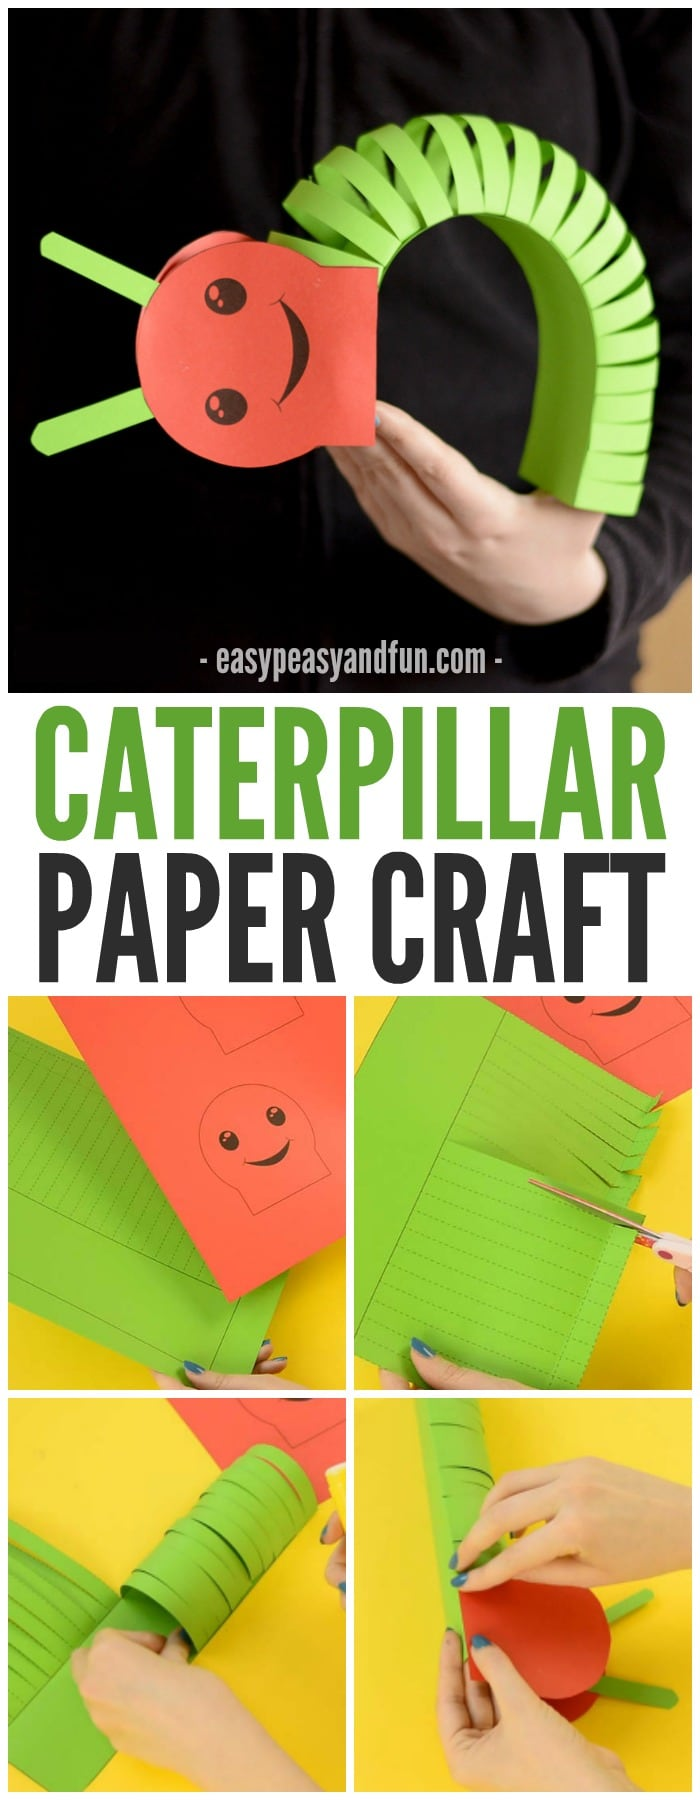 https://www.easypeasyandfun.com/3d-paper-caterpillar-craft/